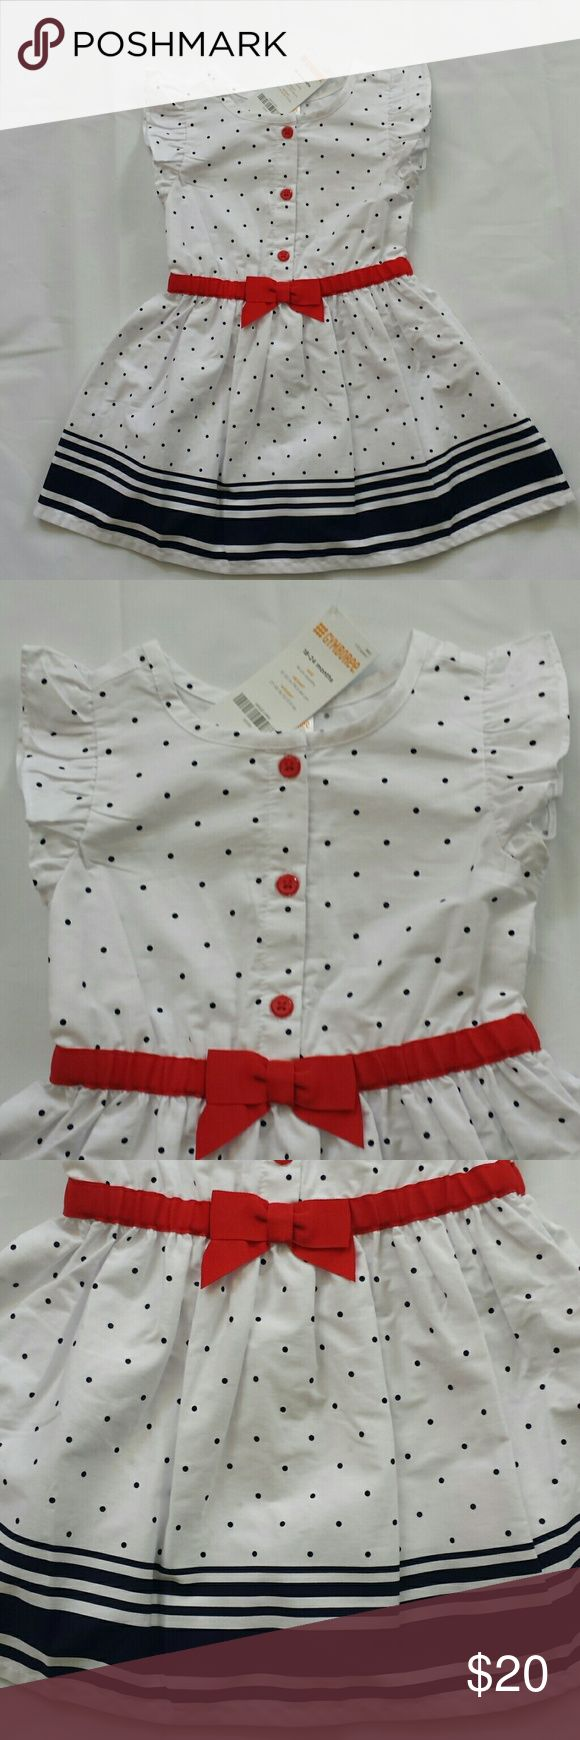 NWT - Gymboree Toddler Girls Dress Beautiful ruffle sleeve, red, white and blue summer dress! From Gymboree, toddler girls size 18-24 mo. 100% cotton, machine washable, easy iron. Perfect for any summer outing, 4th of July event BBQ, cool, comfy and cute!! Gymboree Dresses